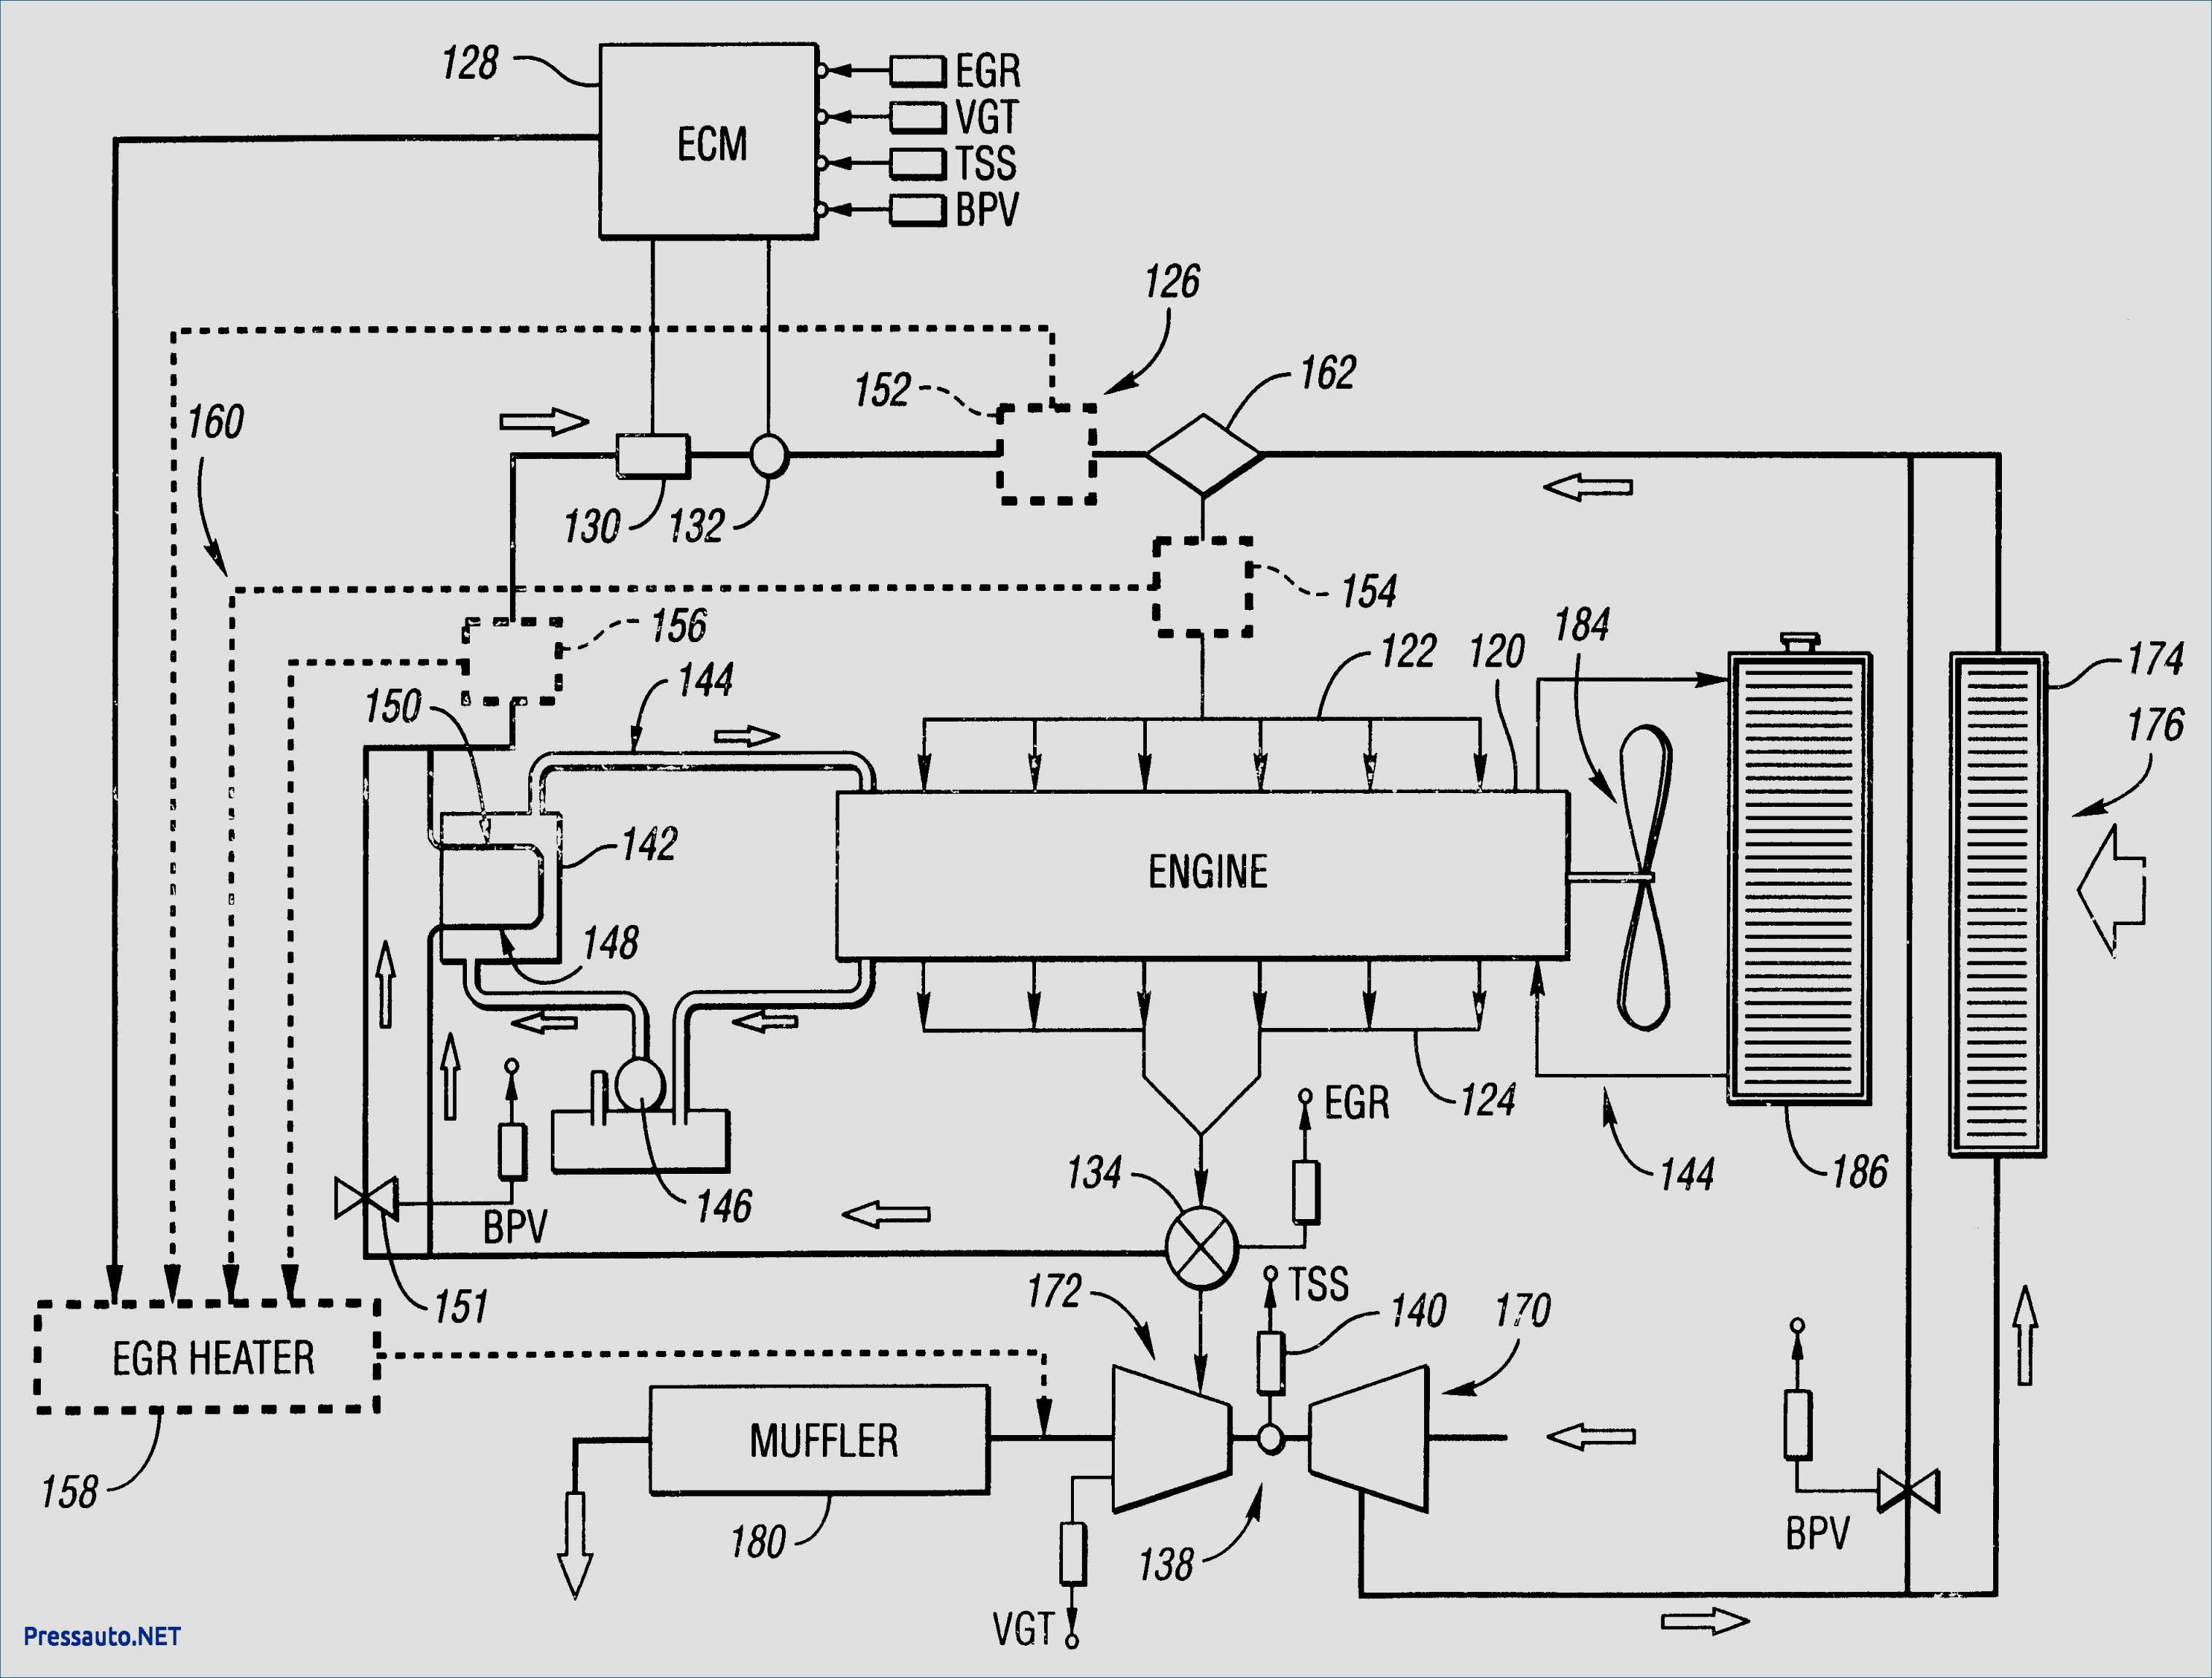 Trane Rooftop Unit Wiring Diagrams Wiring Diagram Explained